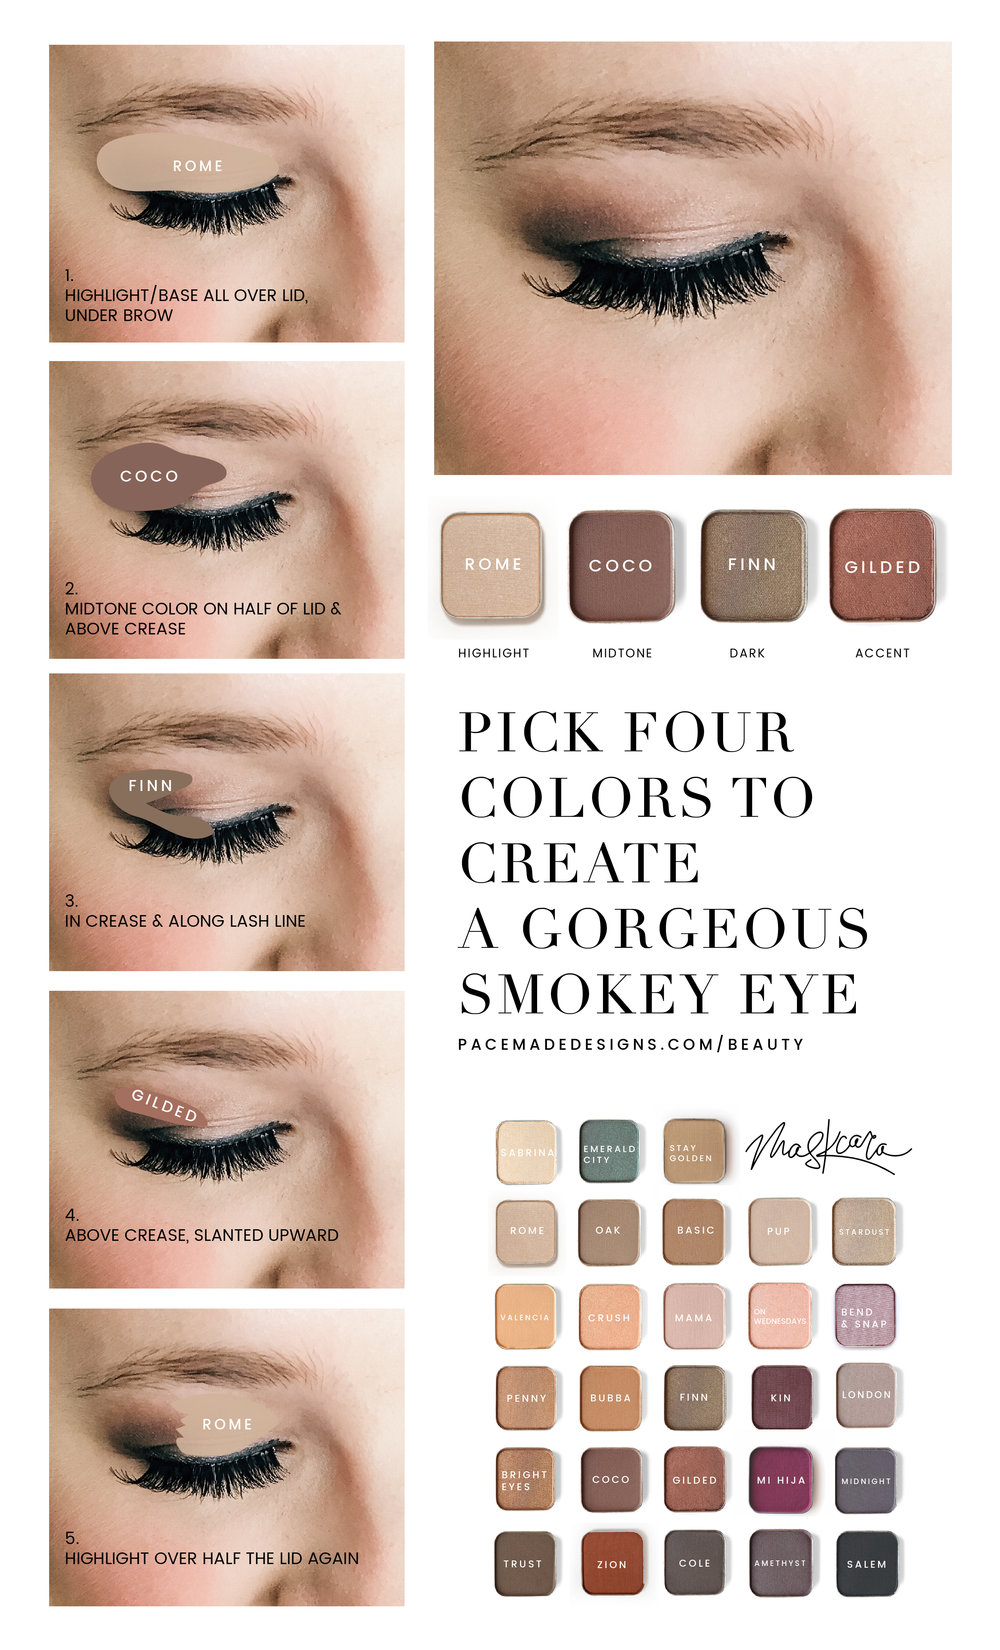 Pick four colors, including ONE that will make your eye pop for this gorgeous smokey eye.